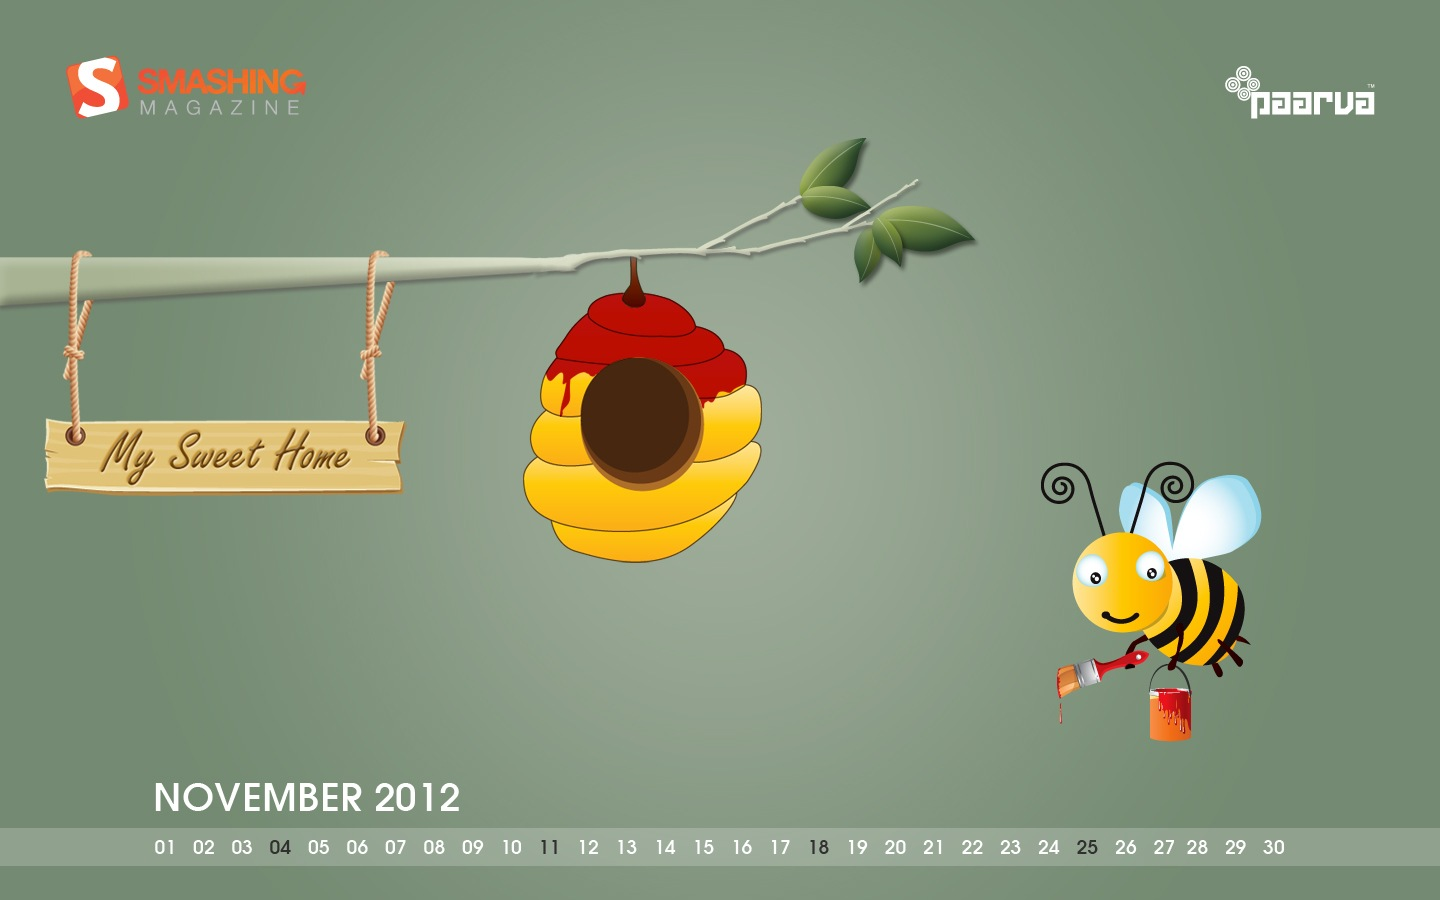 In January Calendar Wallpaper 32038